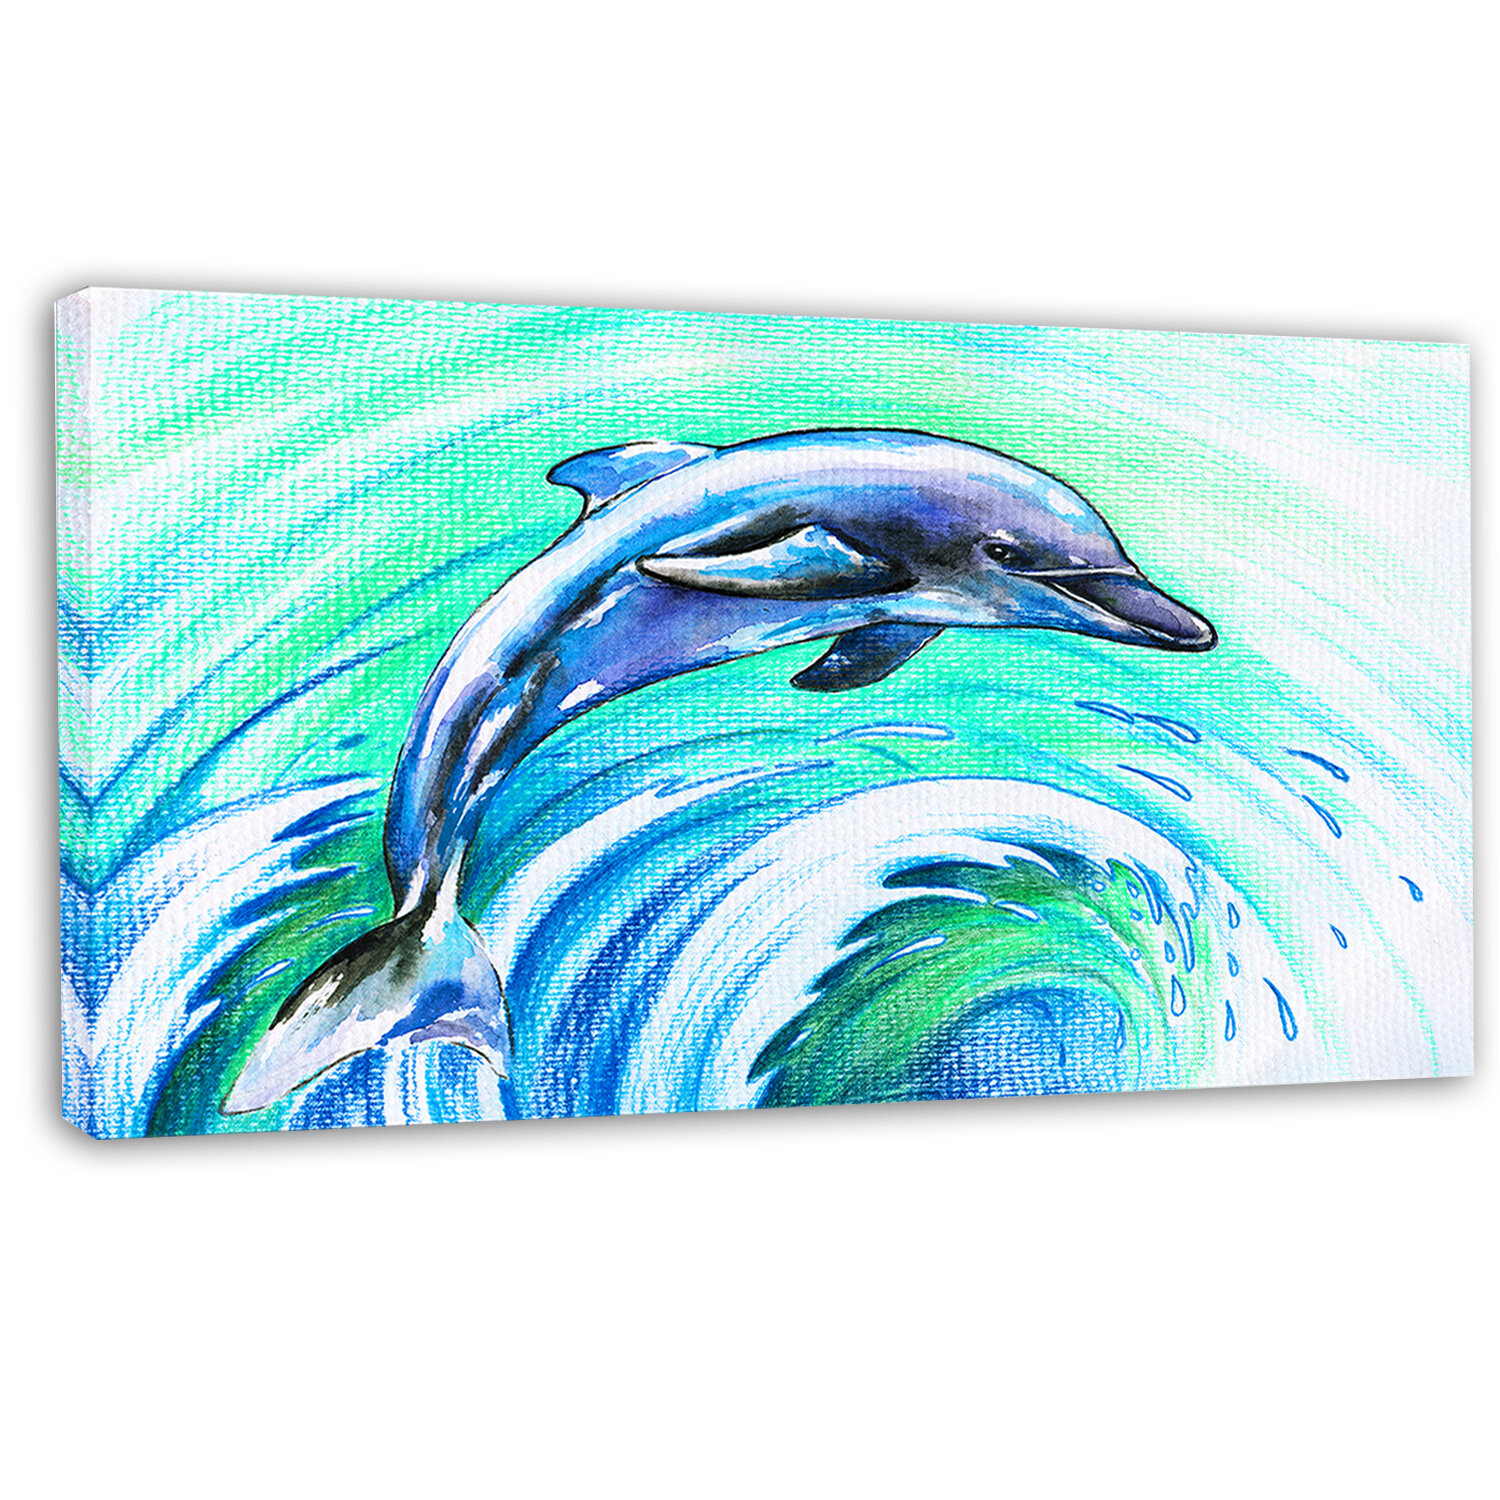 eb291663da0 DesignArt 'Jumping Dolphin Watercolor' Painting Print on Wrapped Canvas |  Wayfair